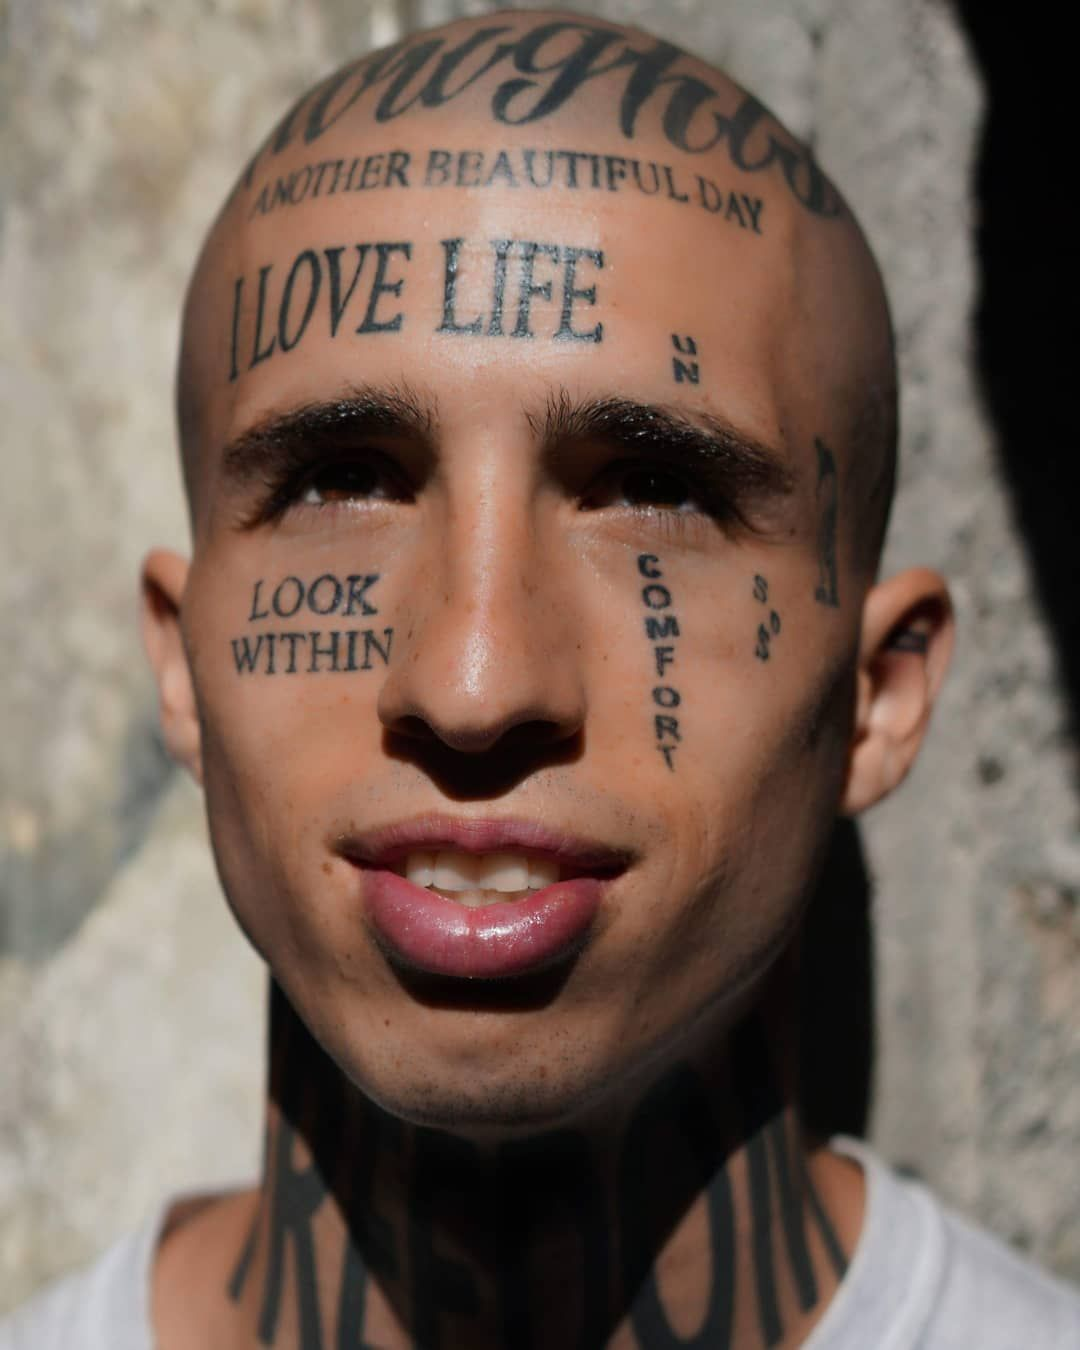 Can every face tattoo be deleted tattoostattoos for